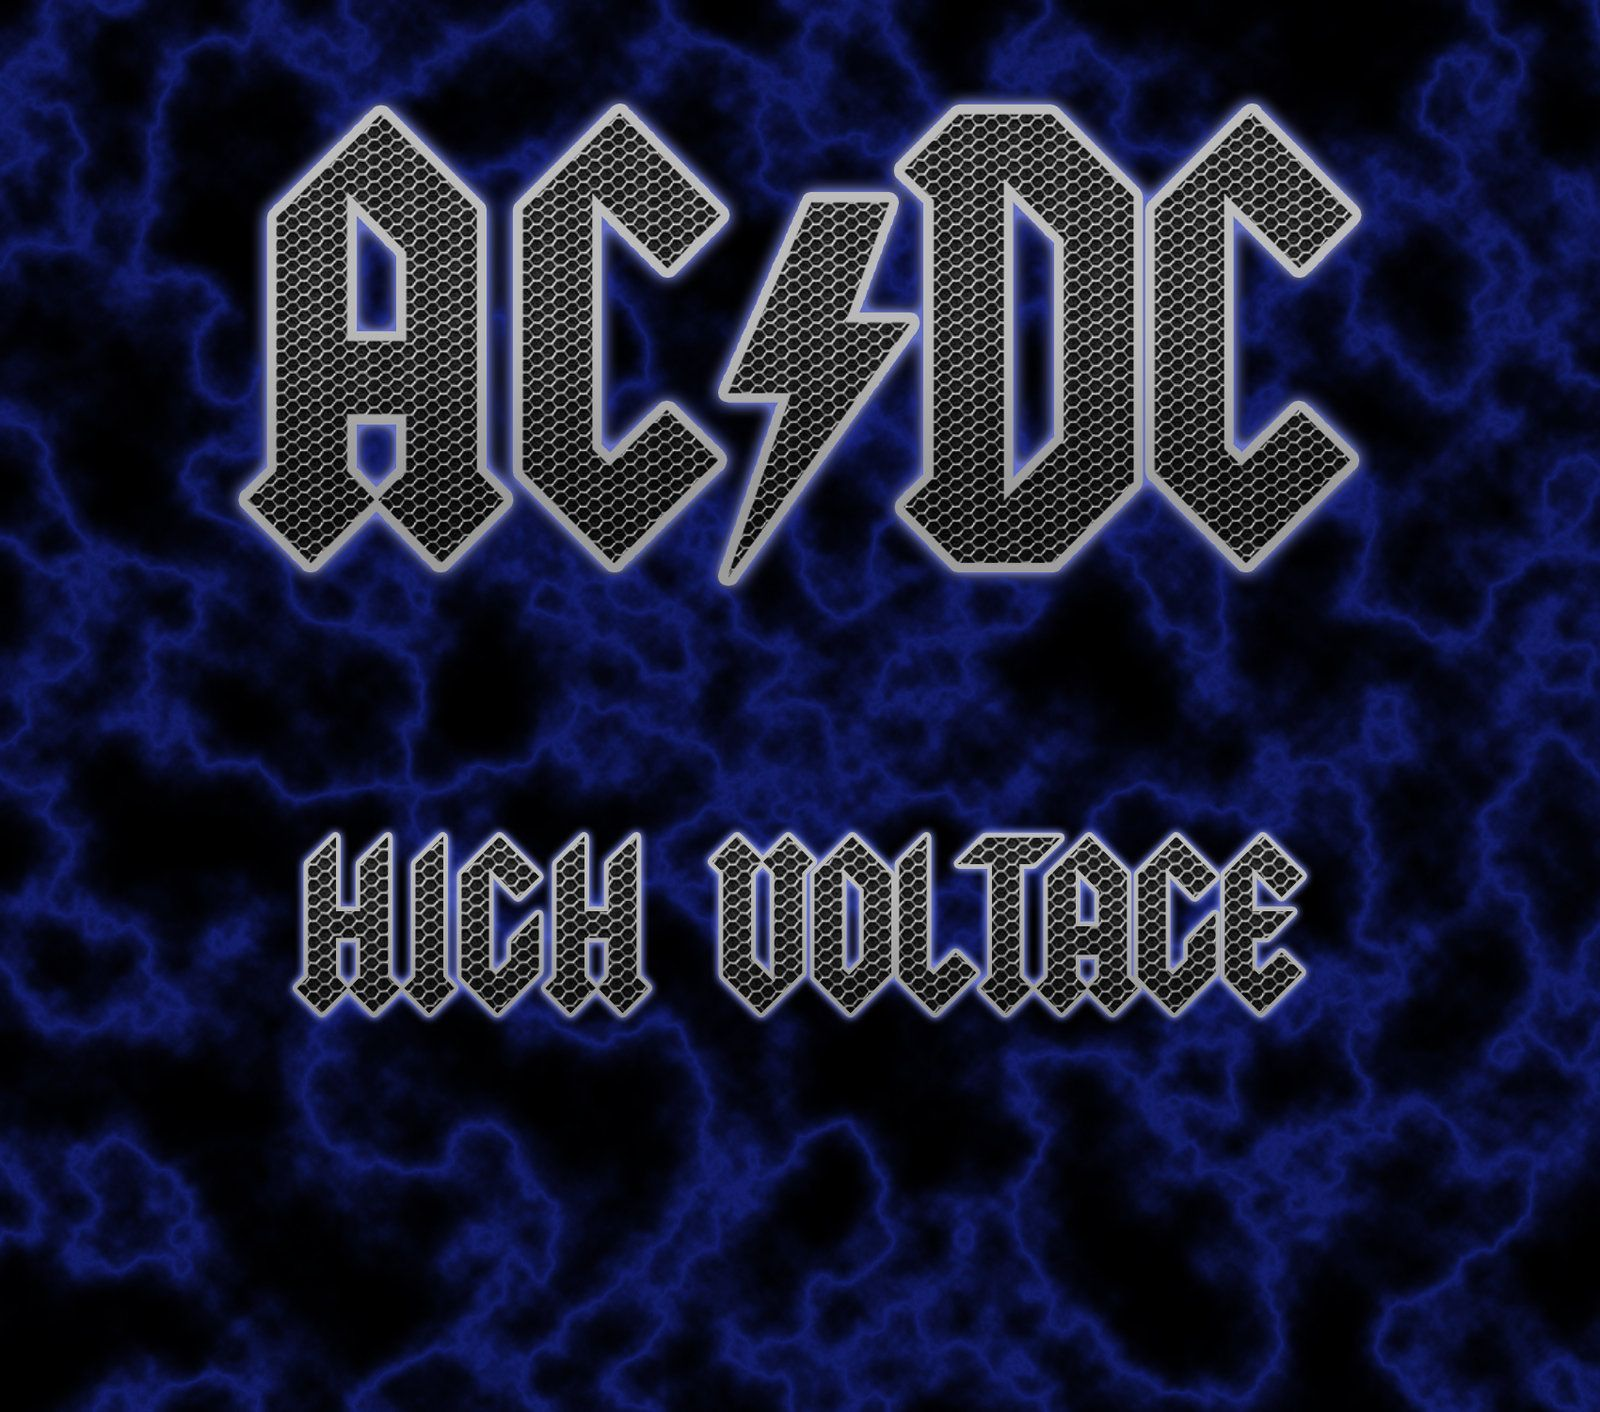 Ac dc album covers album cover ac dc high voltage by rubenick designs interfaces cd